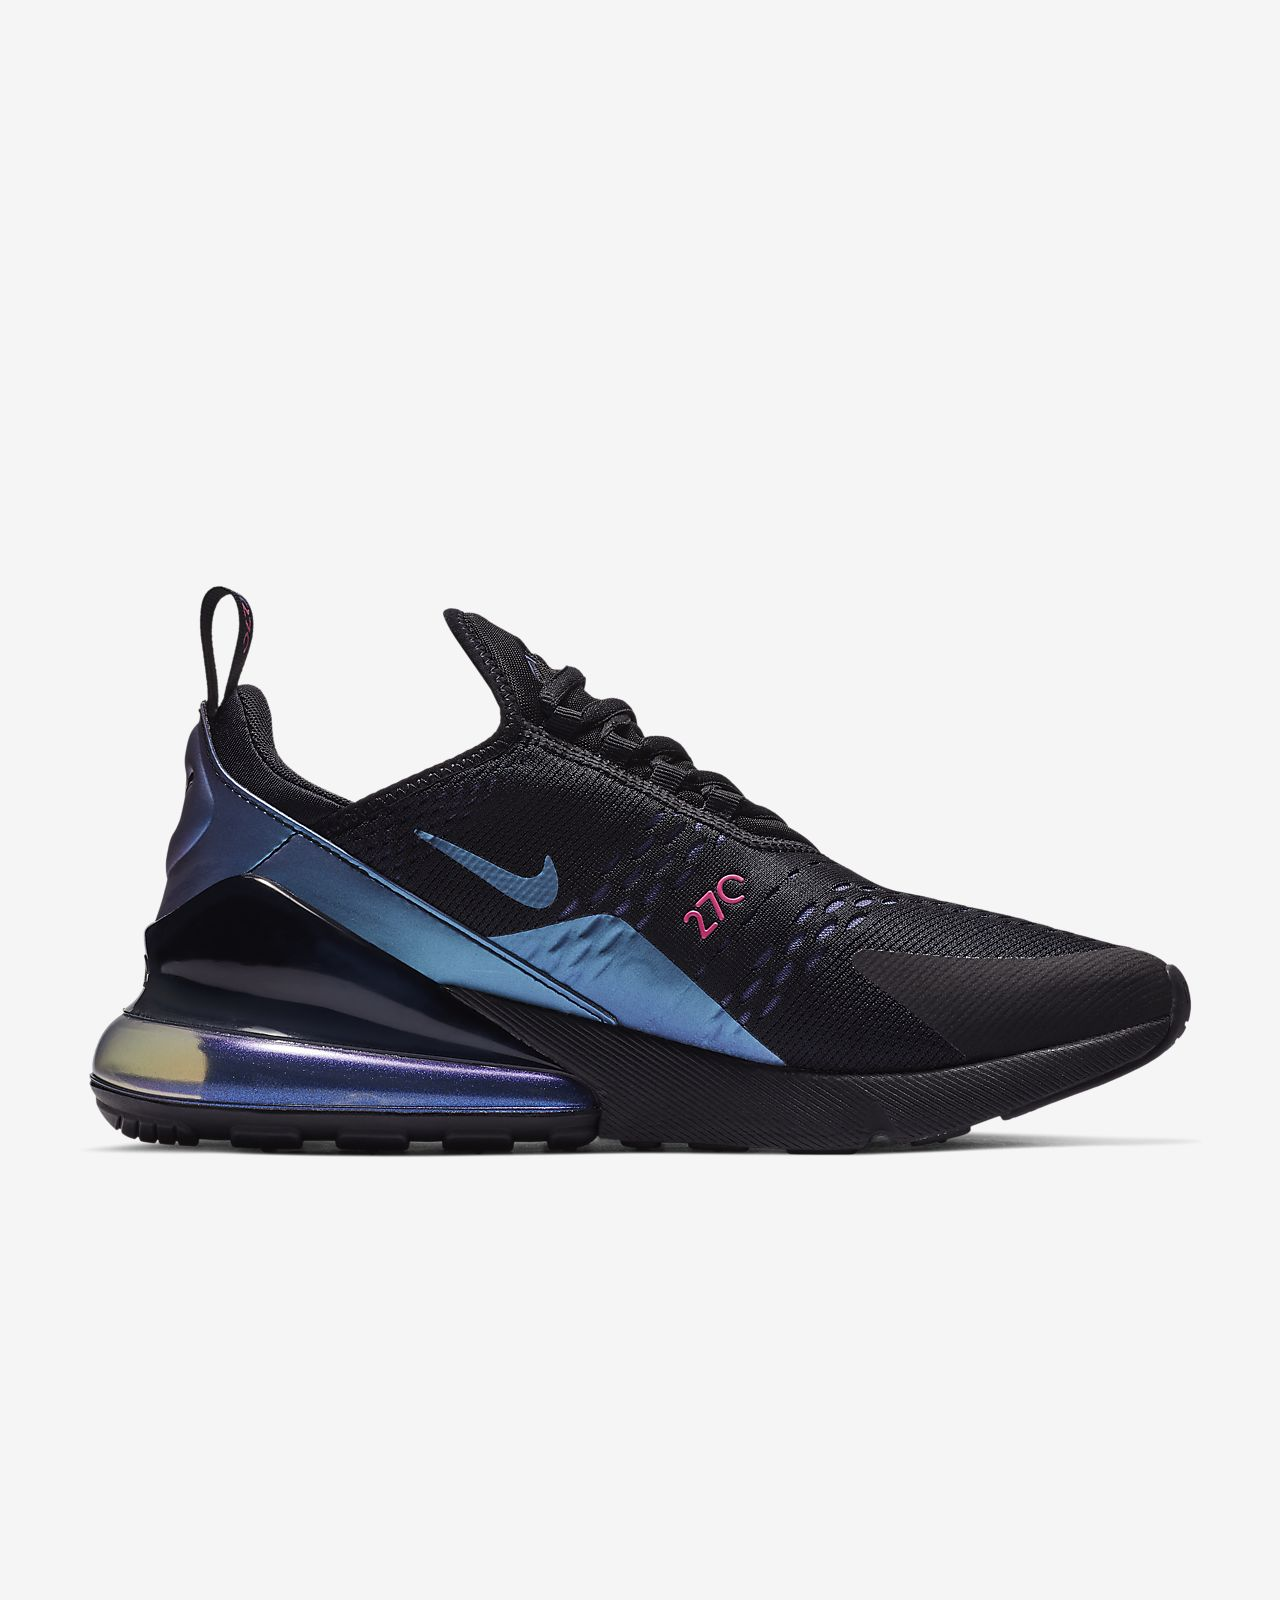 6a97a2780b8b Nike Air Max 270 Men s Shoe. Nike.com GB